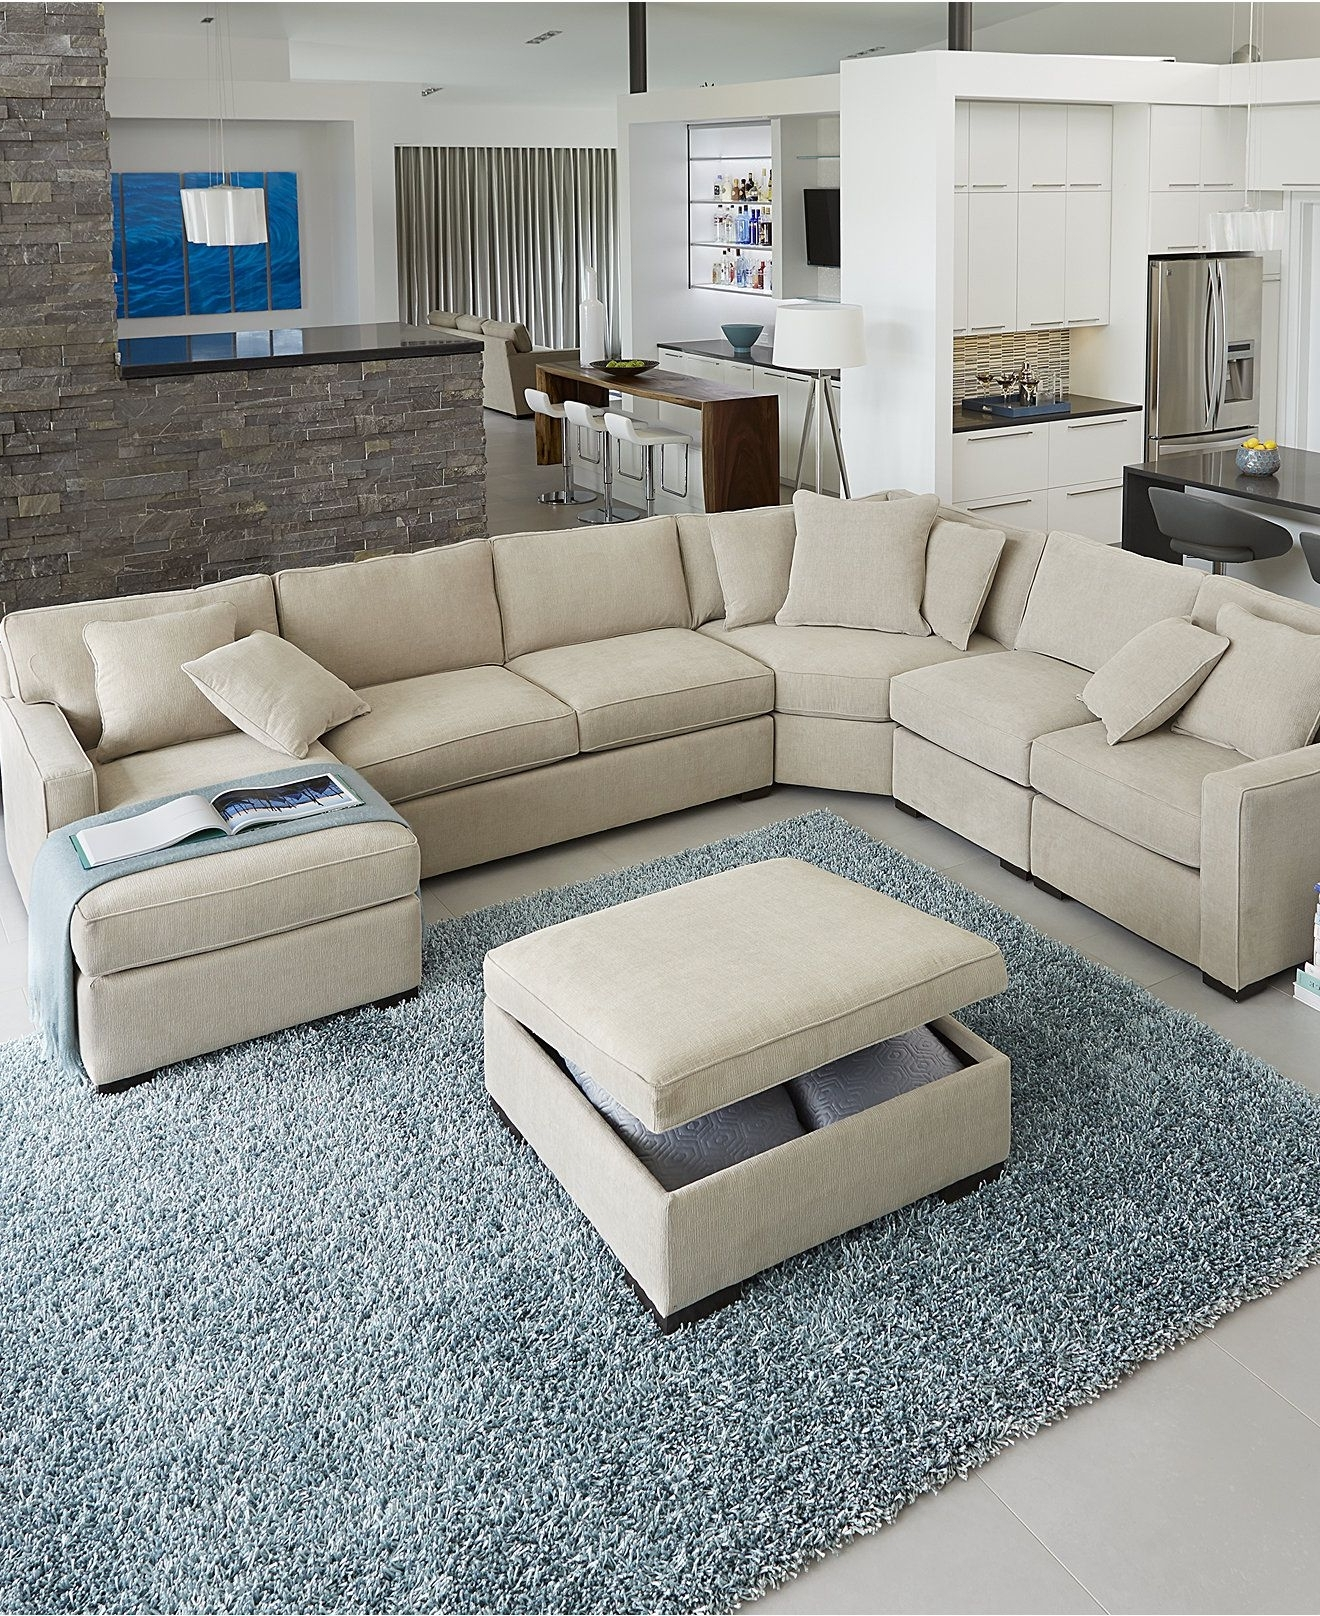 Newest Radley Fabric Sectional Sofa Collection, Created For Macy's Throughout Macys Sectional Sofas (View 14 of 15)